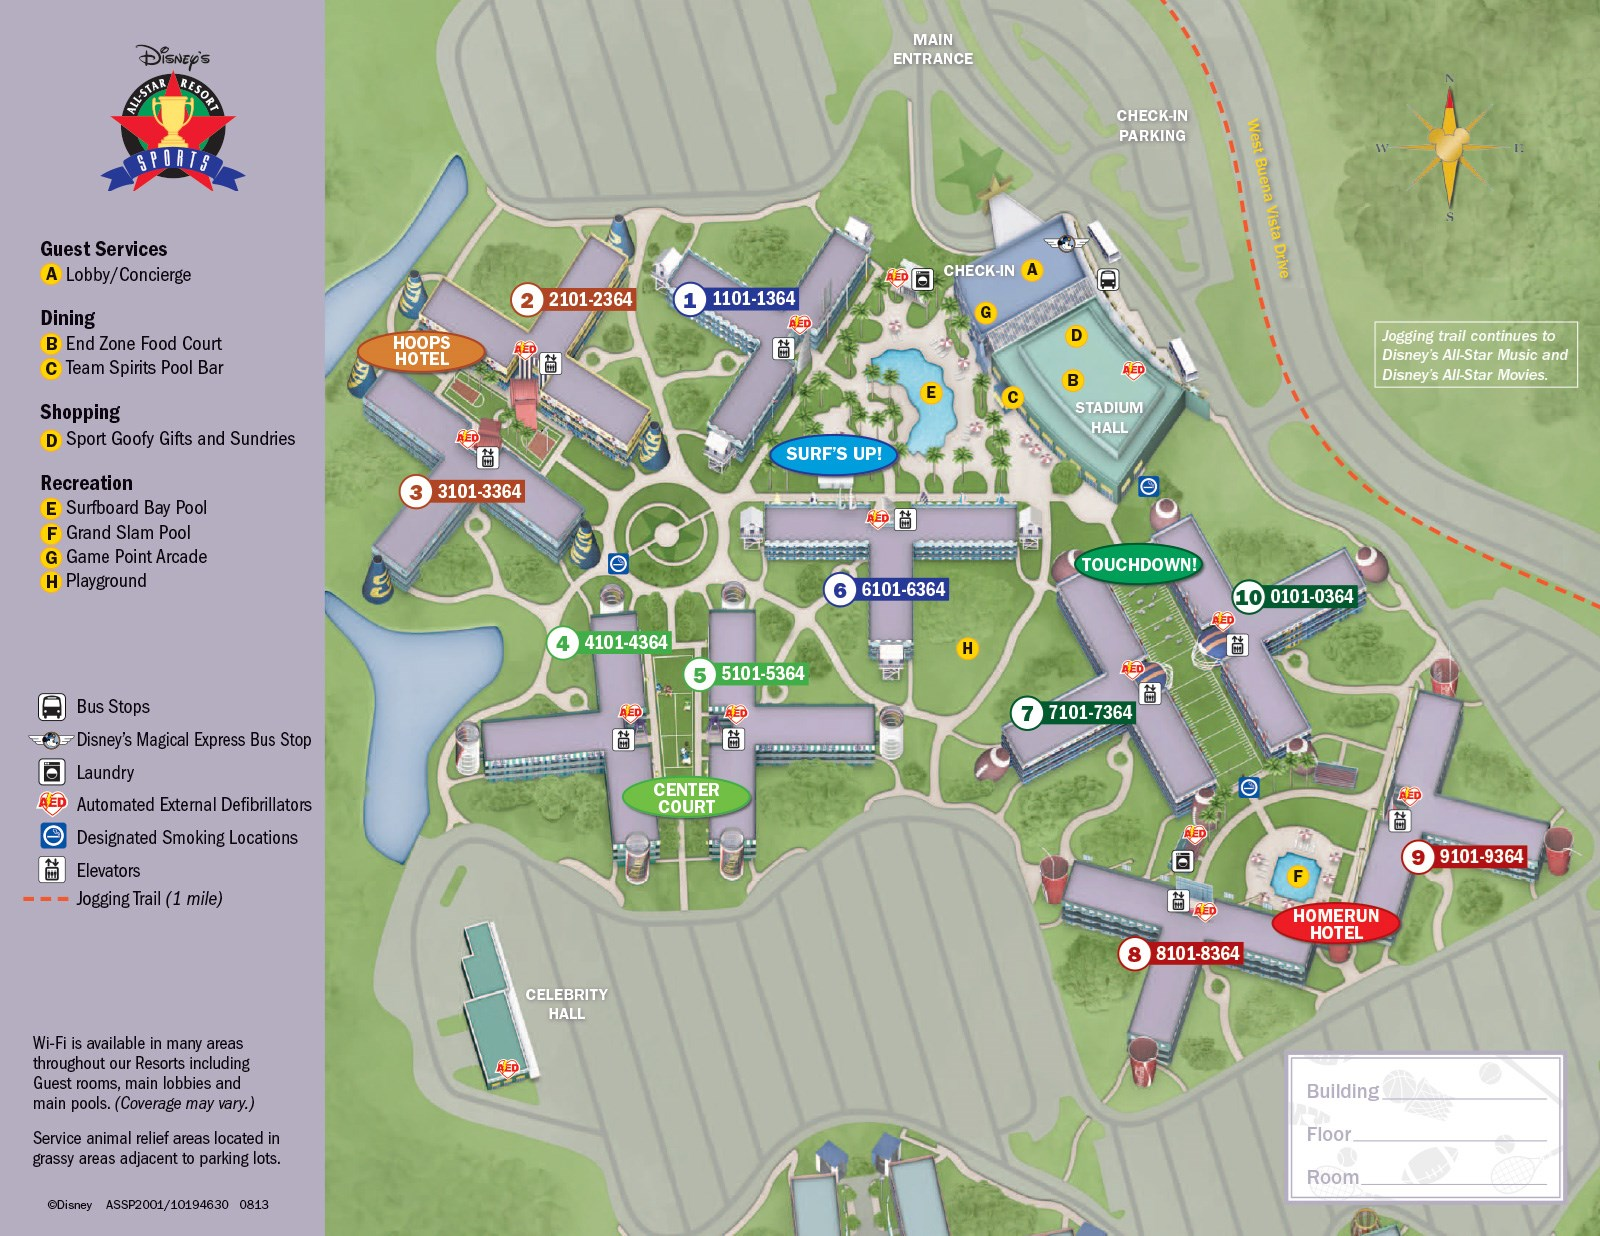 2013 All Star Sports Resort guide map